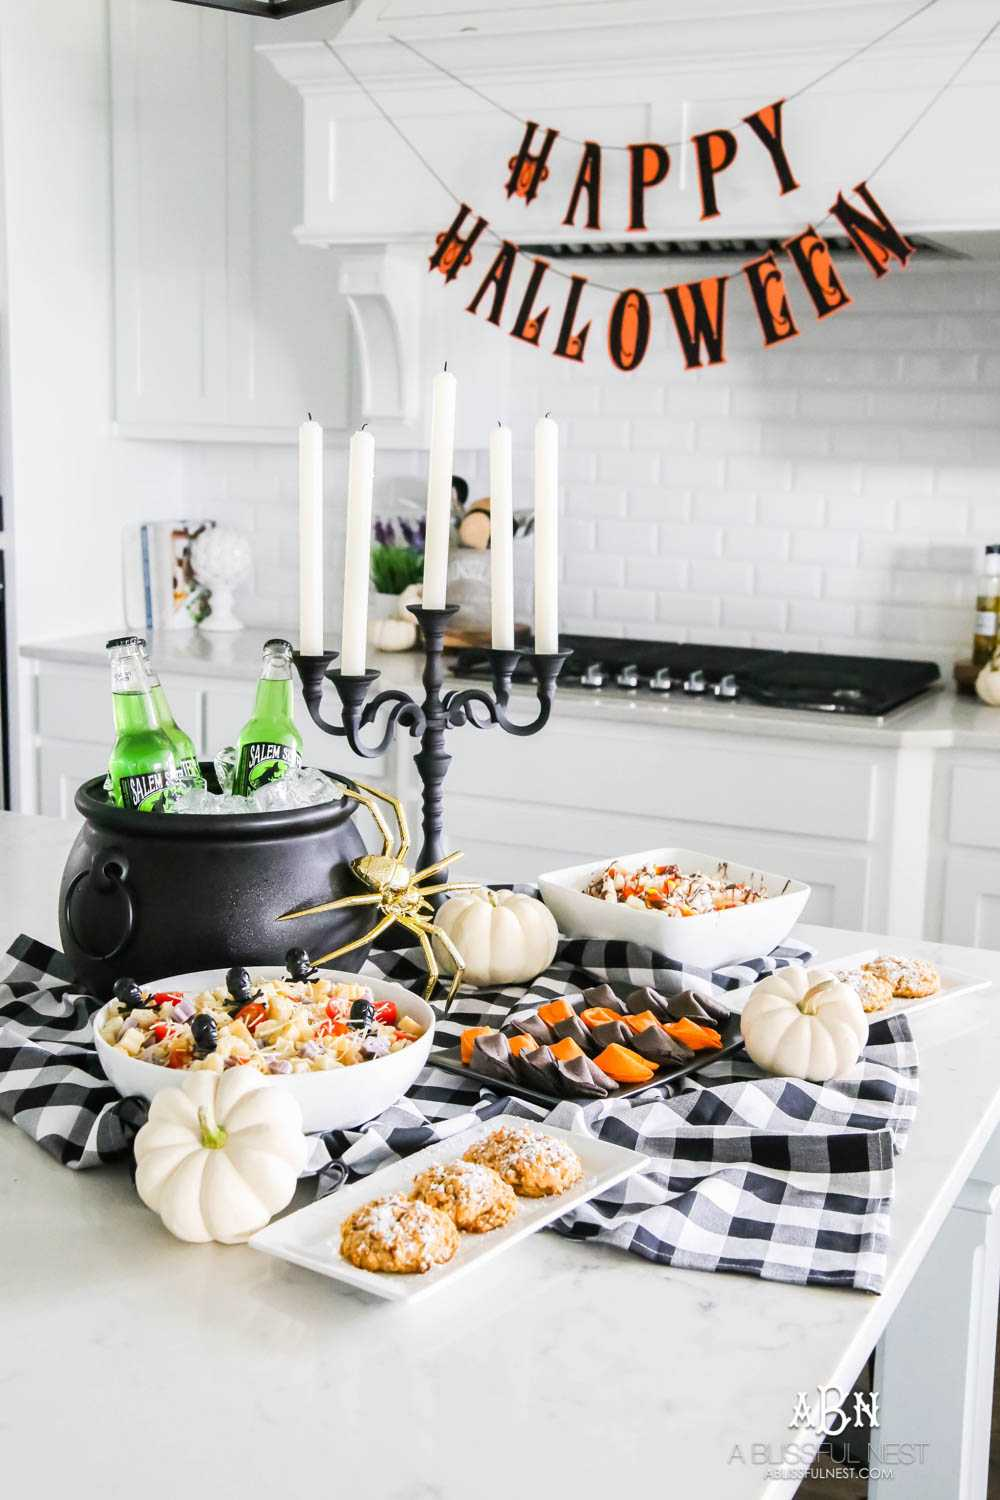 Halloween Ideas Archives - A Blissful Nest